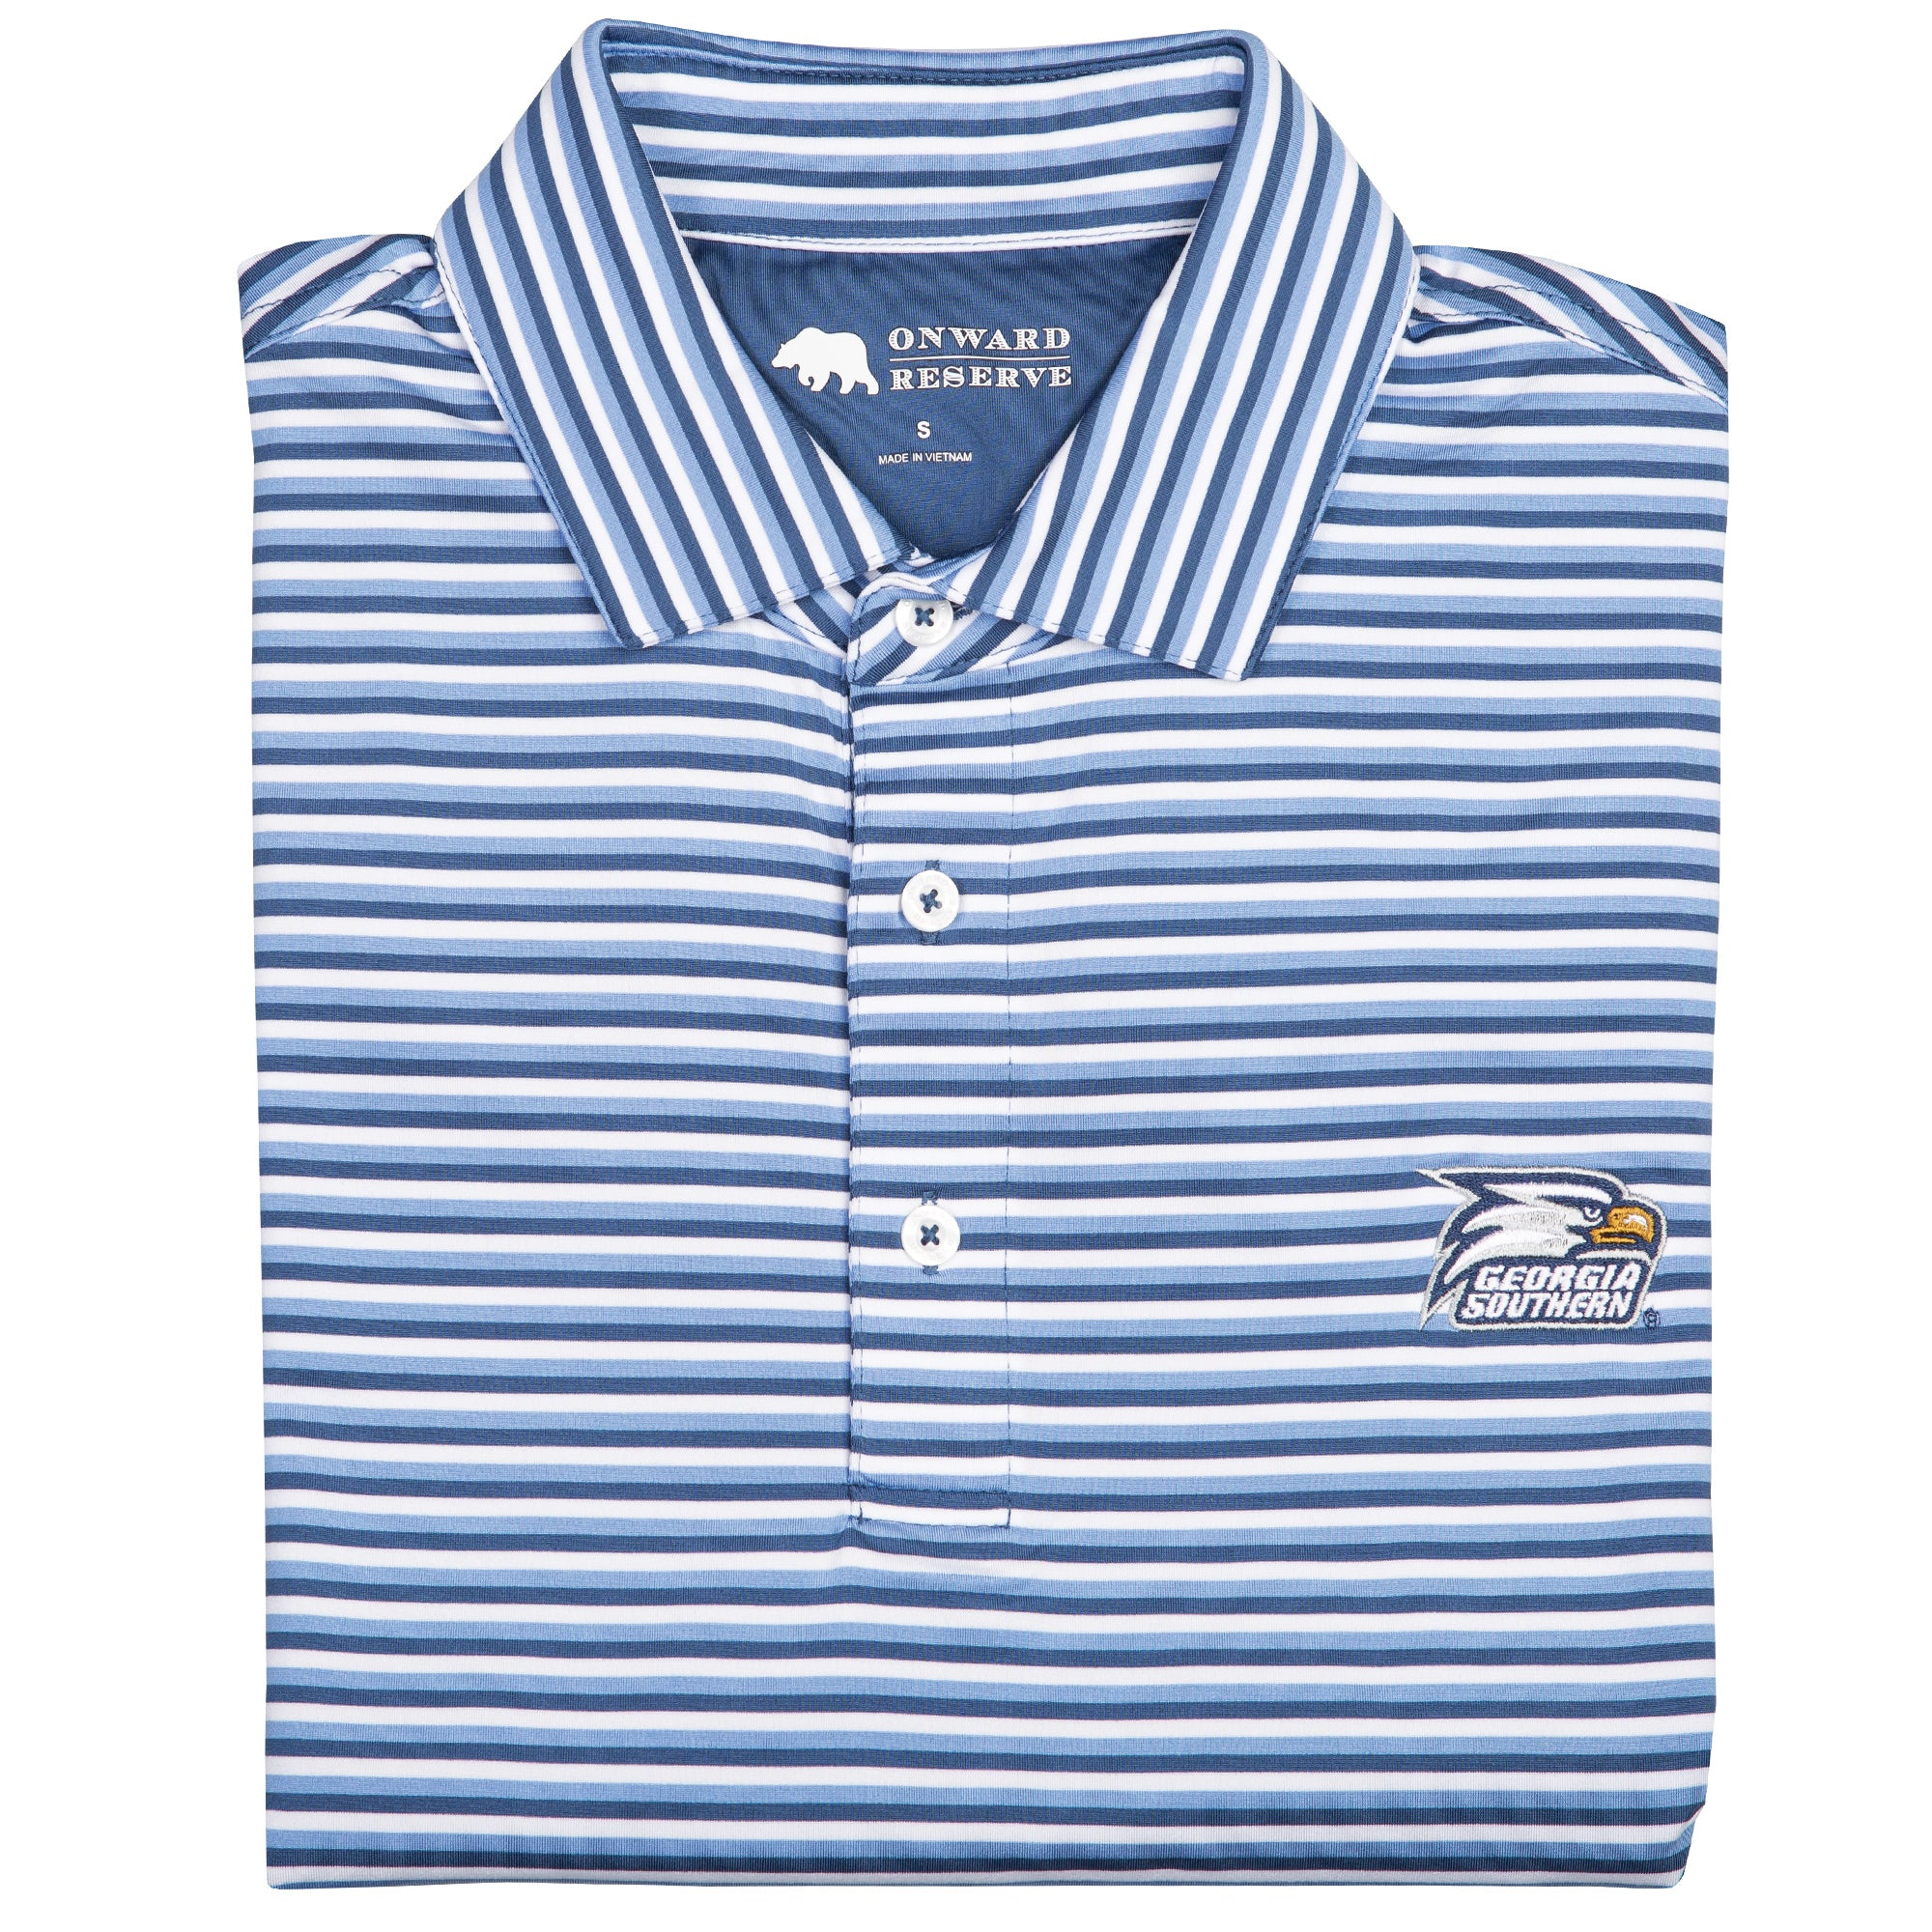 Triple Stripe Georgia Southern Polo - OnwardReserve